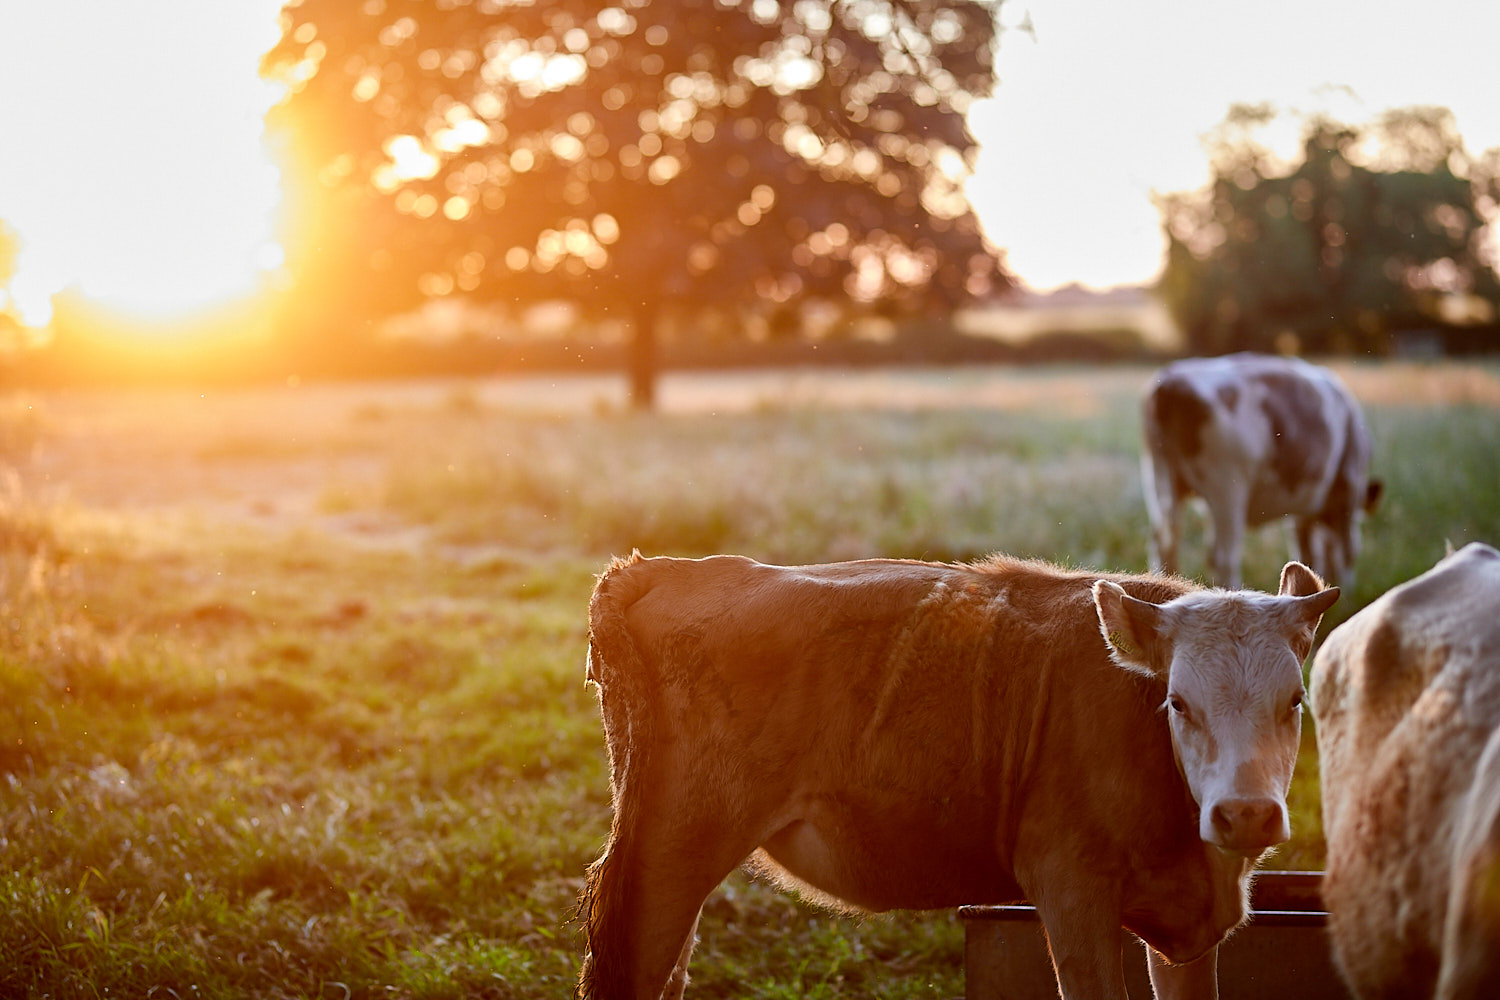 A cow in a field at sunset